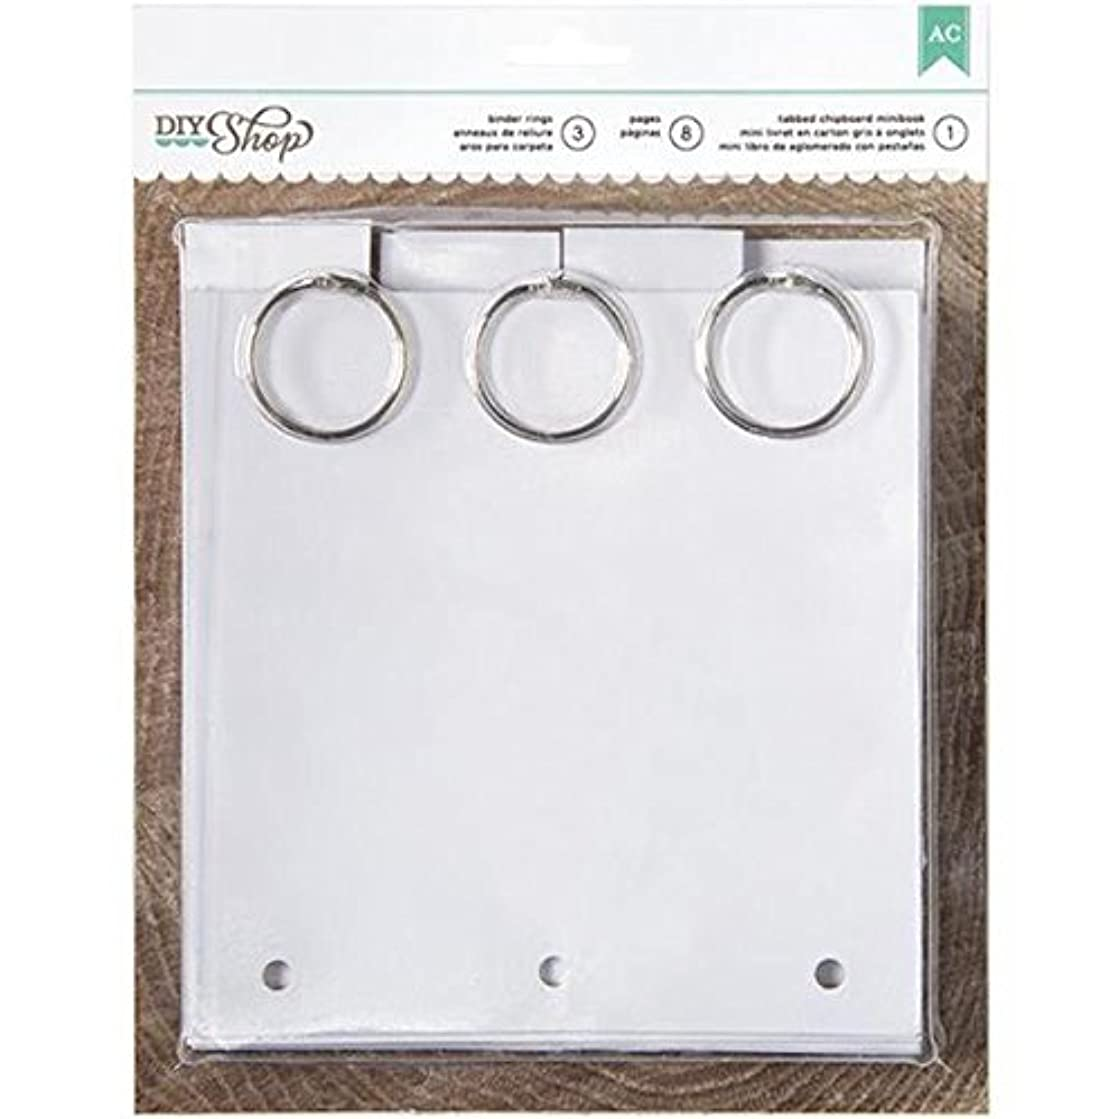 American Crafts 6 by 6-Inch 8 Pages Tabbed DIY Shop Chipboard Book, Mini